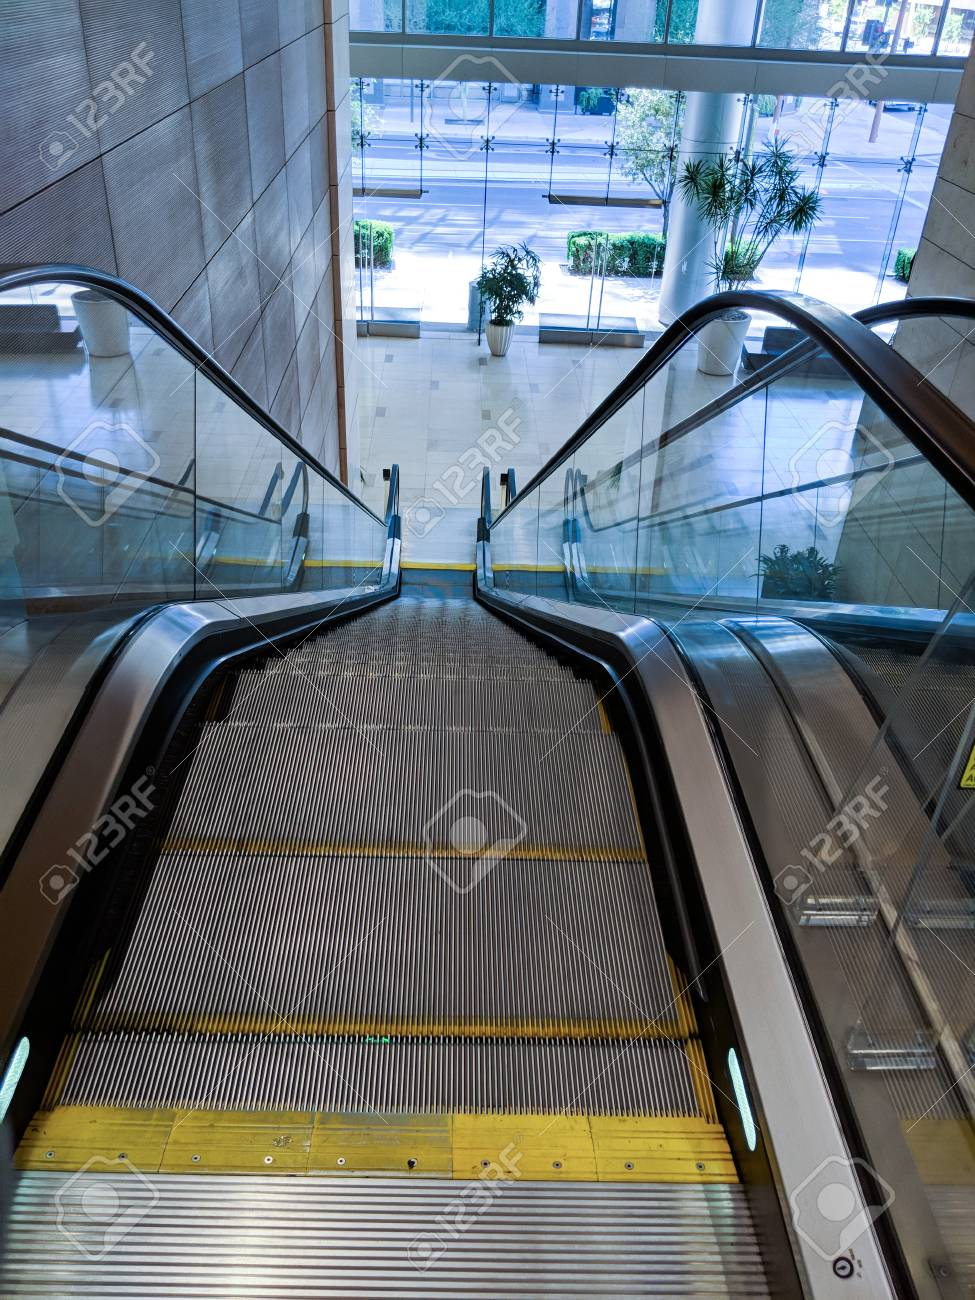 Escalator Moving Staircase Between Street Entrance To A Shopping Mall And  Next Floor Level Stock Photo